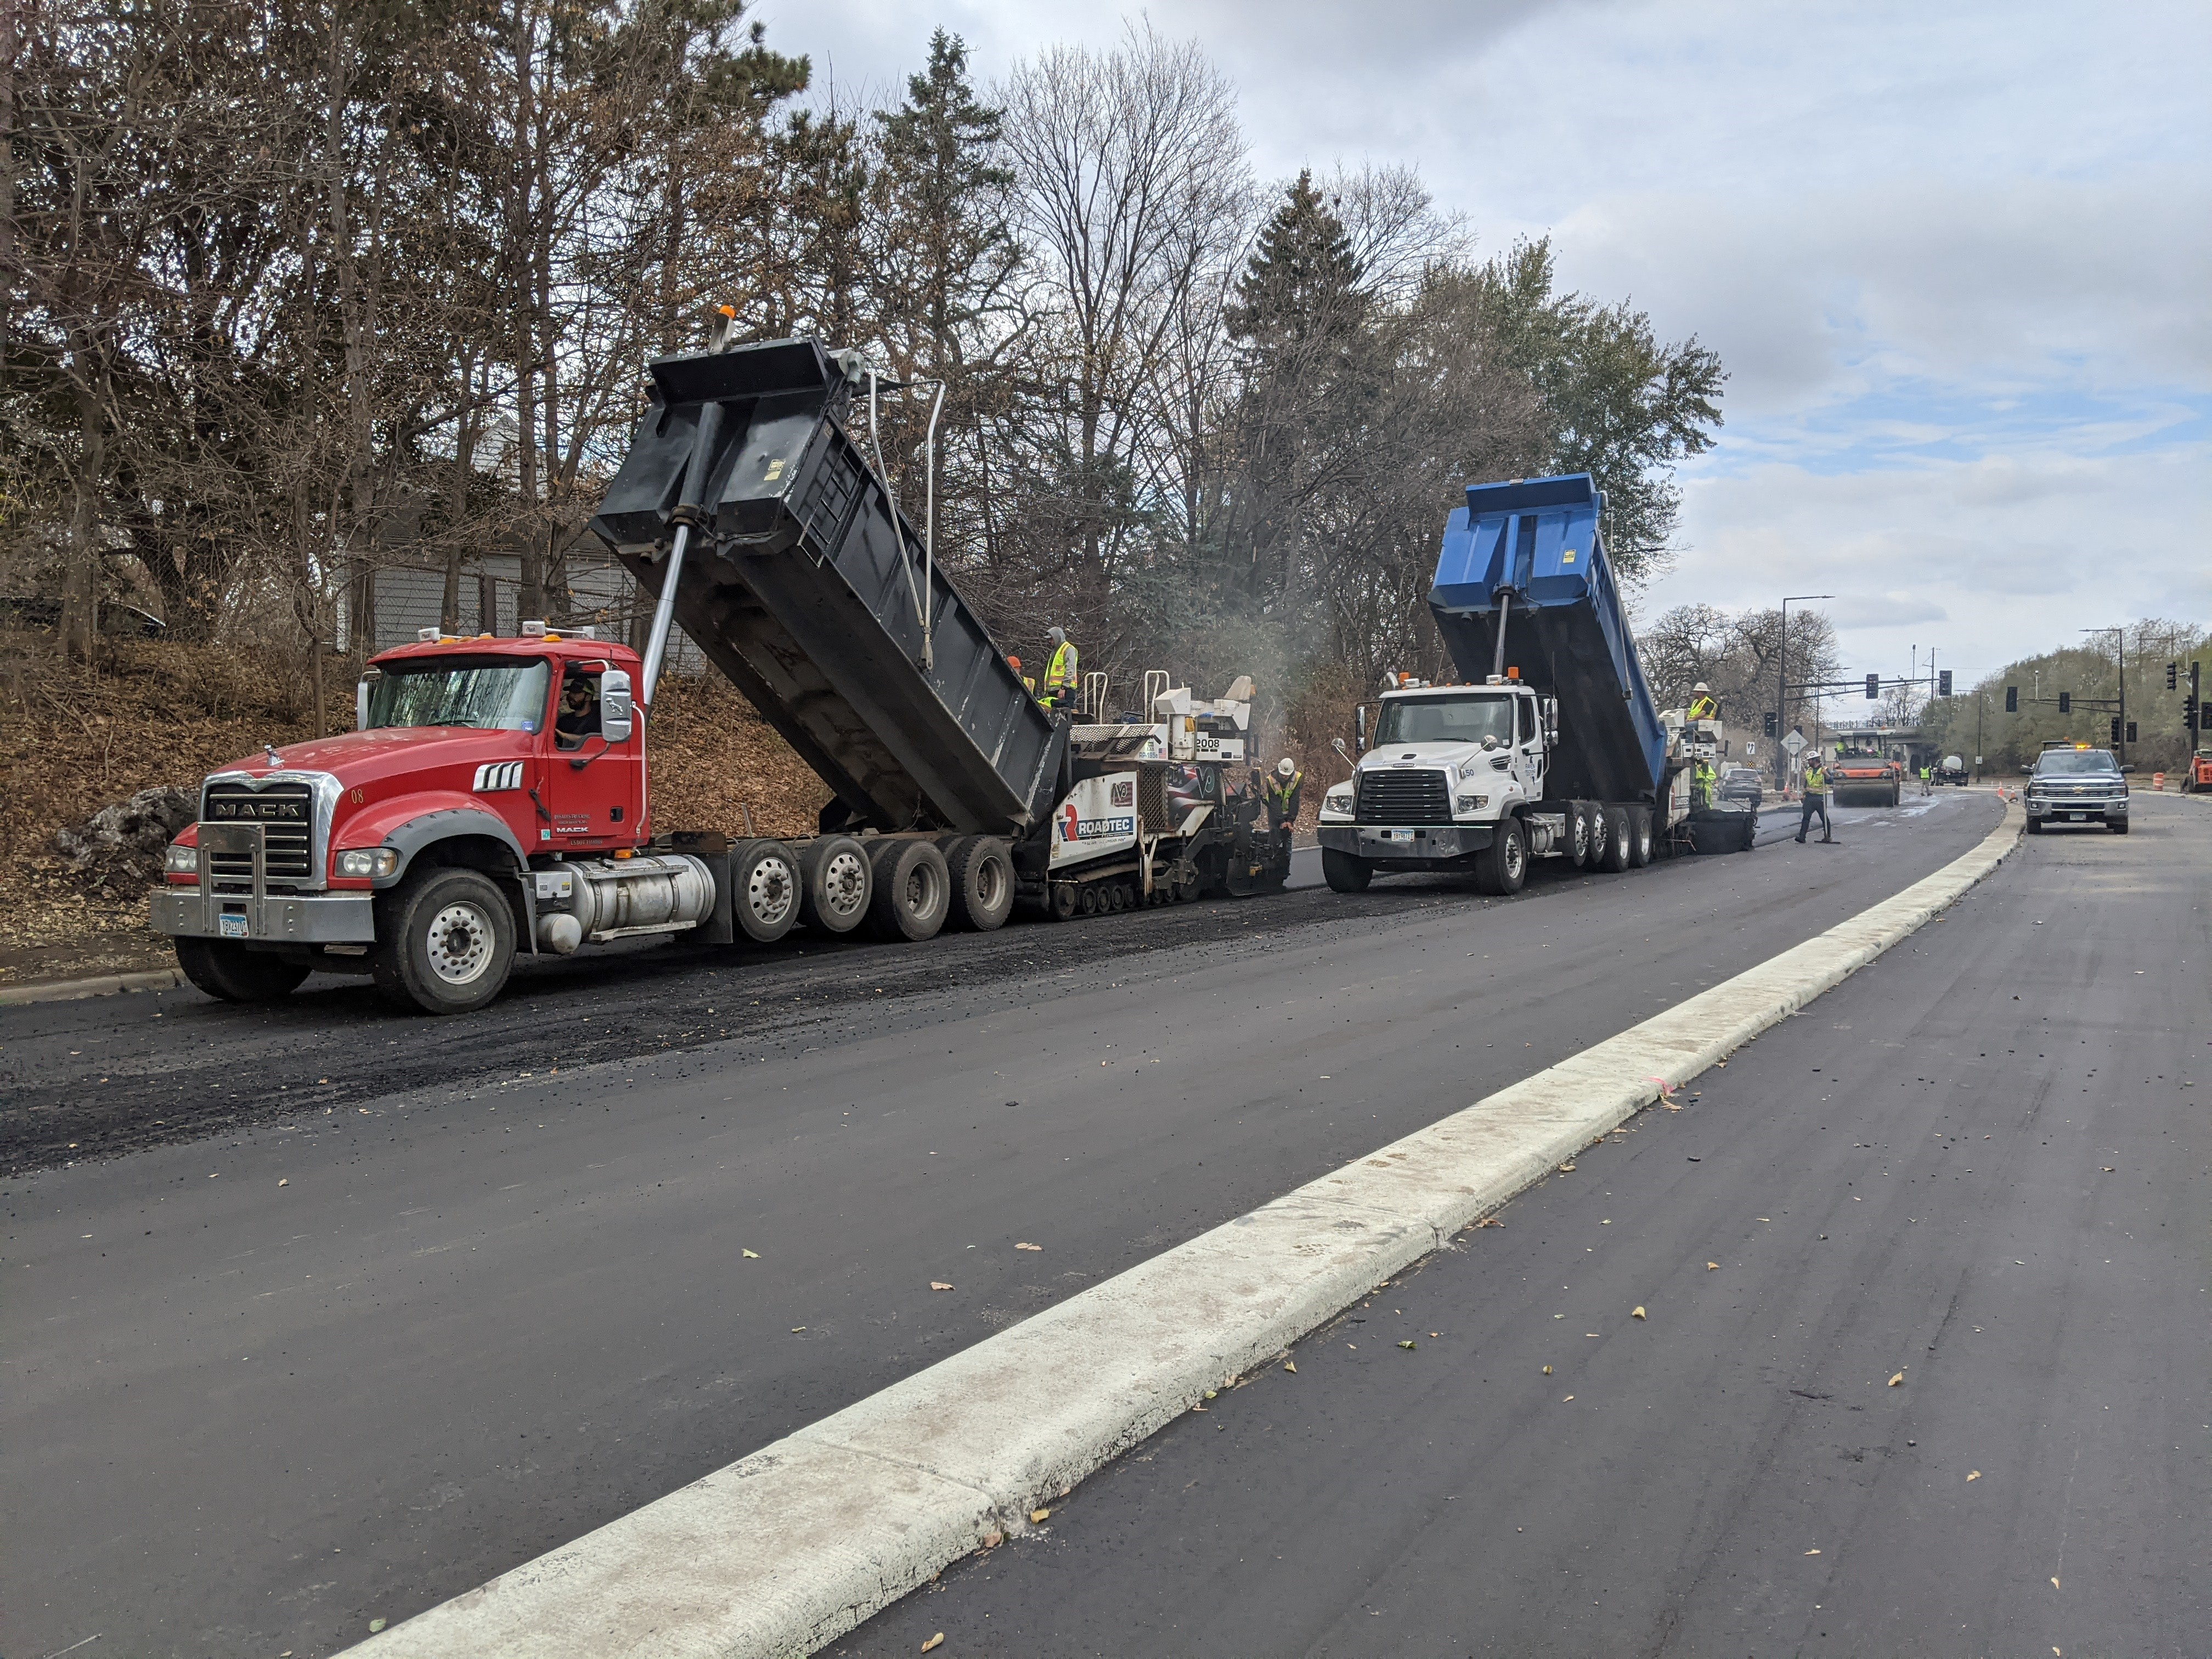 Construction photo of Ayd Mill Road from 11.2.20. Photo shows the view from northbound Ayd Mill Road between the Summit Avenue bridge and Ashland Avenue. In the photo, the contractor is paving southbound lanes of Ayd Mill Road using large equipment.